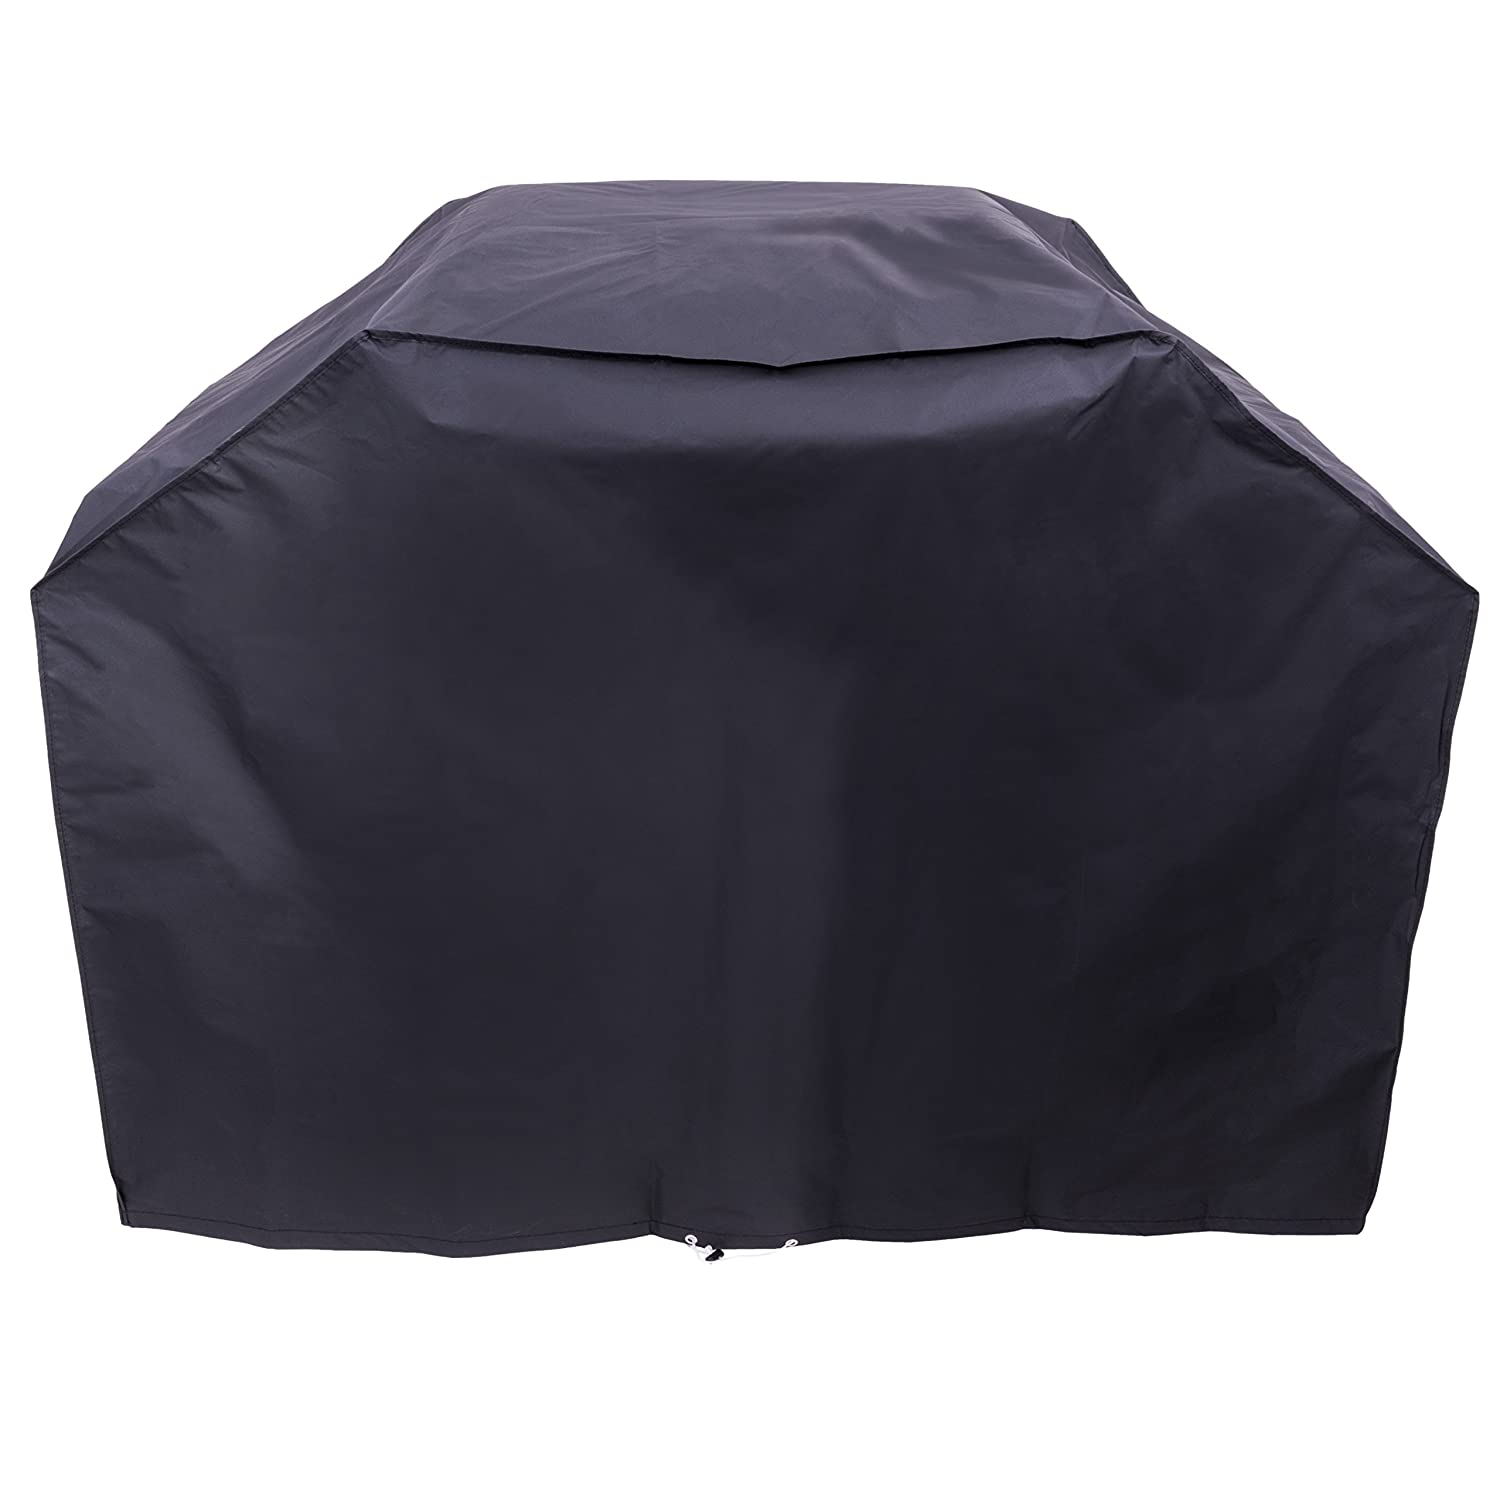 Char-Broil 3-4 Burner Large Basic Grill Cover